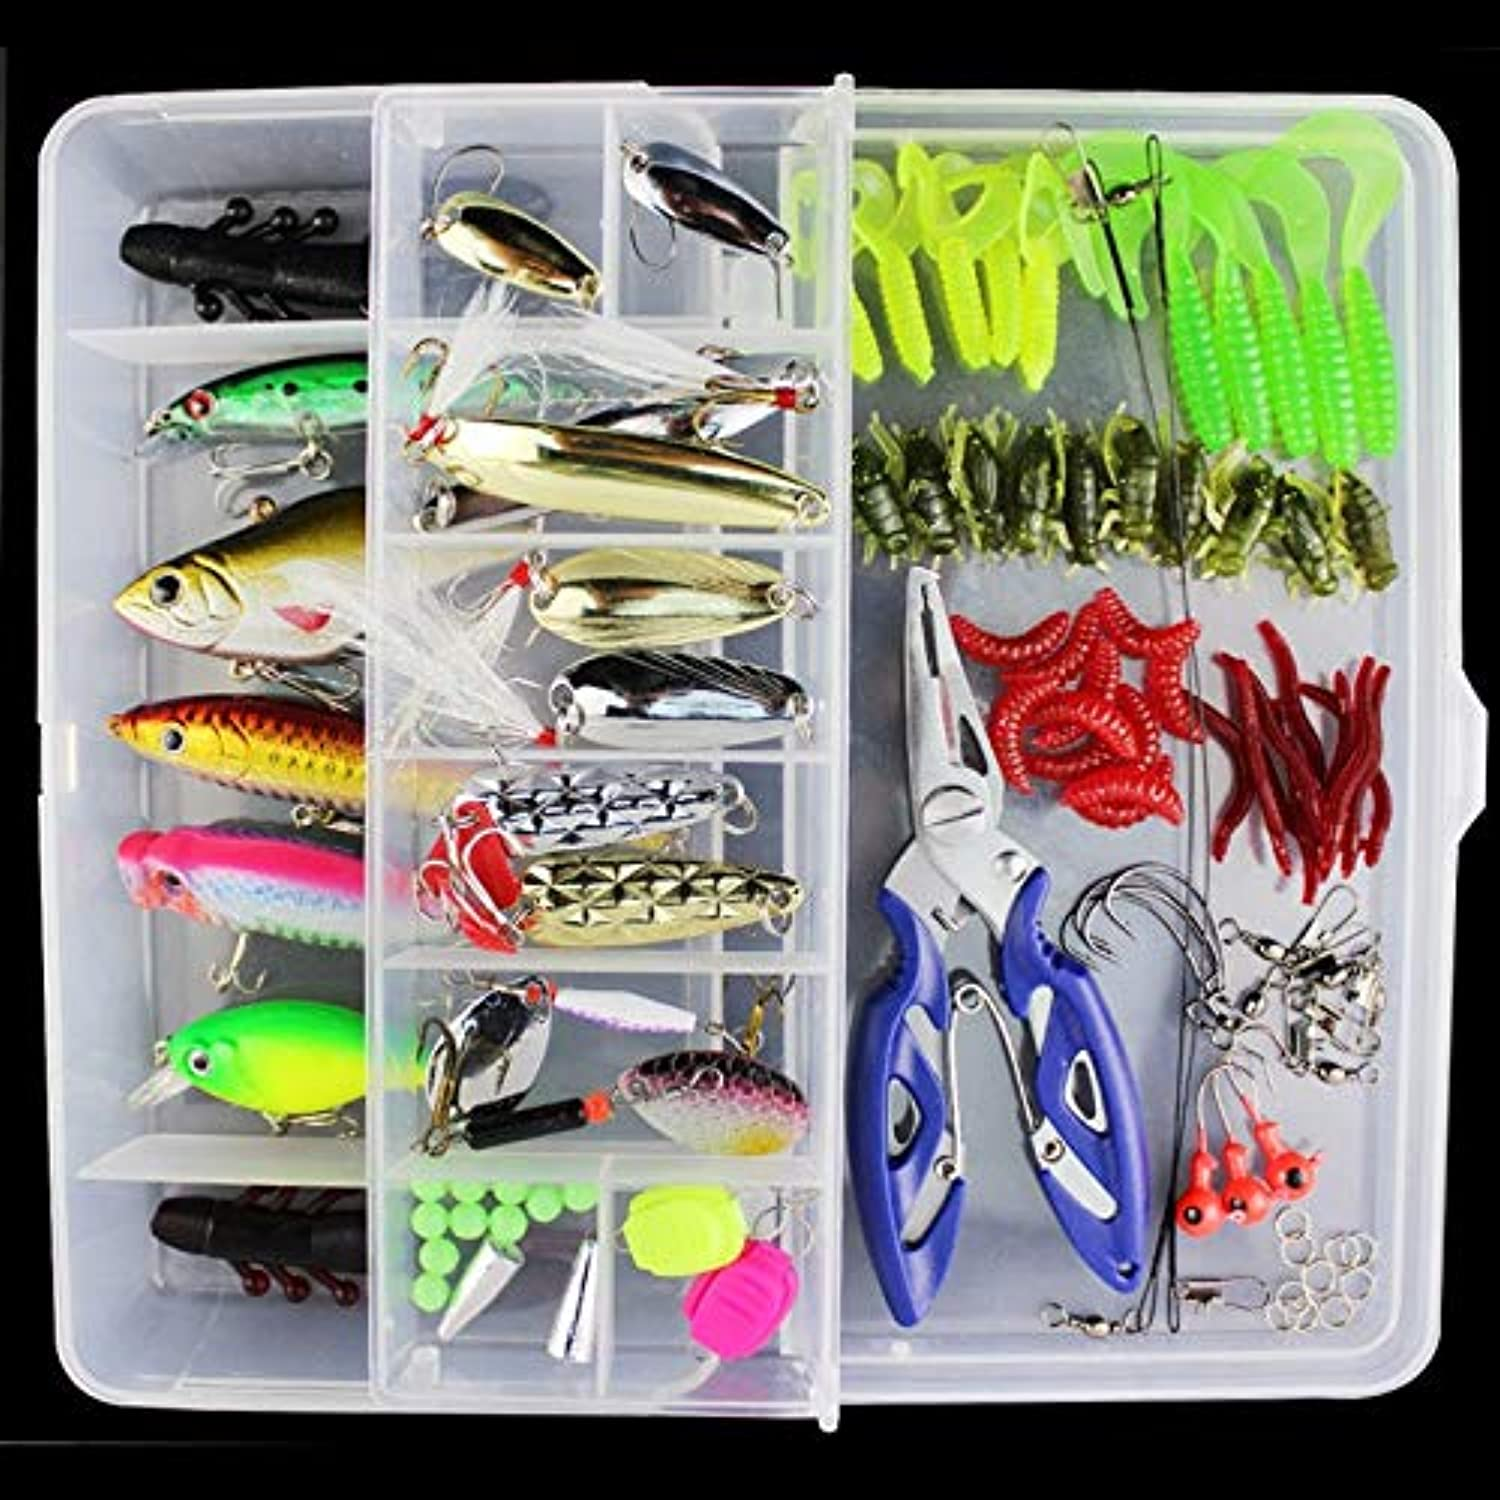 Generic 101pcs Lot Fishing Lures Random colors Crank Bait Hooks Minnow Bass Baits Tackle + Box Set Pesca Fishing Accessories